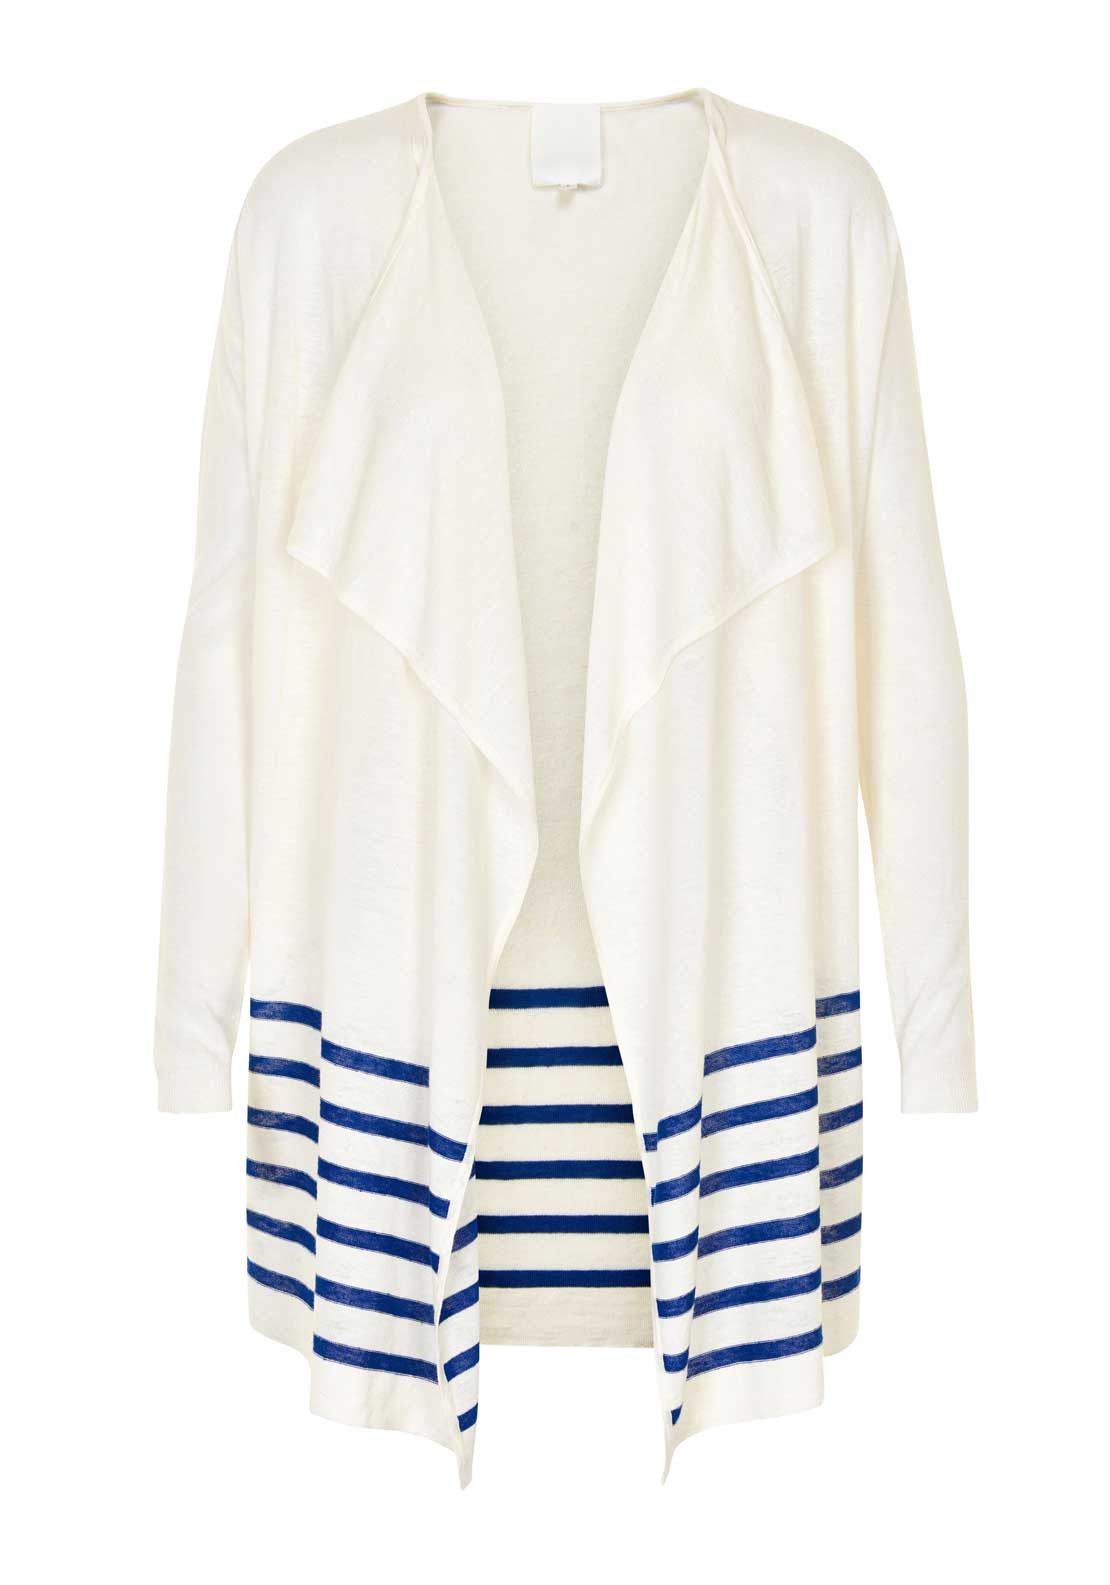 Inwear Naia Striped Panel Linen Blend Cardigan, Off White